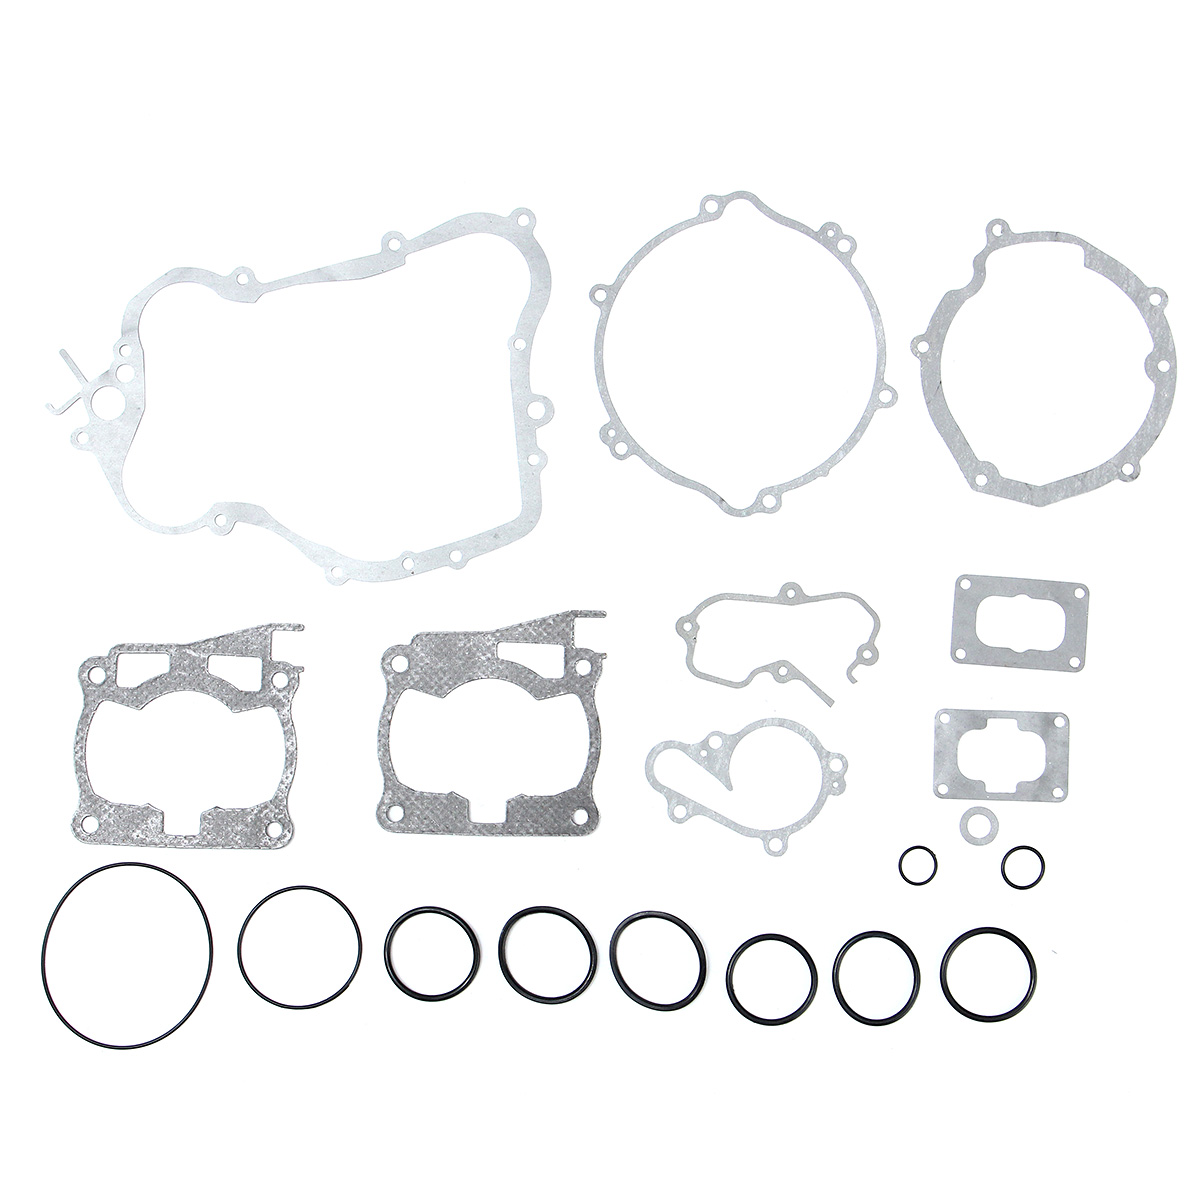 Motorcycle Engine Gasket Kit Set For Yamaha Yz125 1994 2002 Sale Yz 125 Wiring Diagram